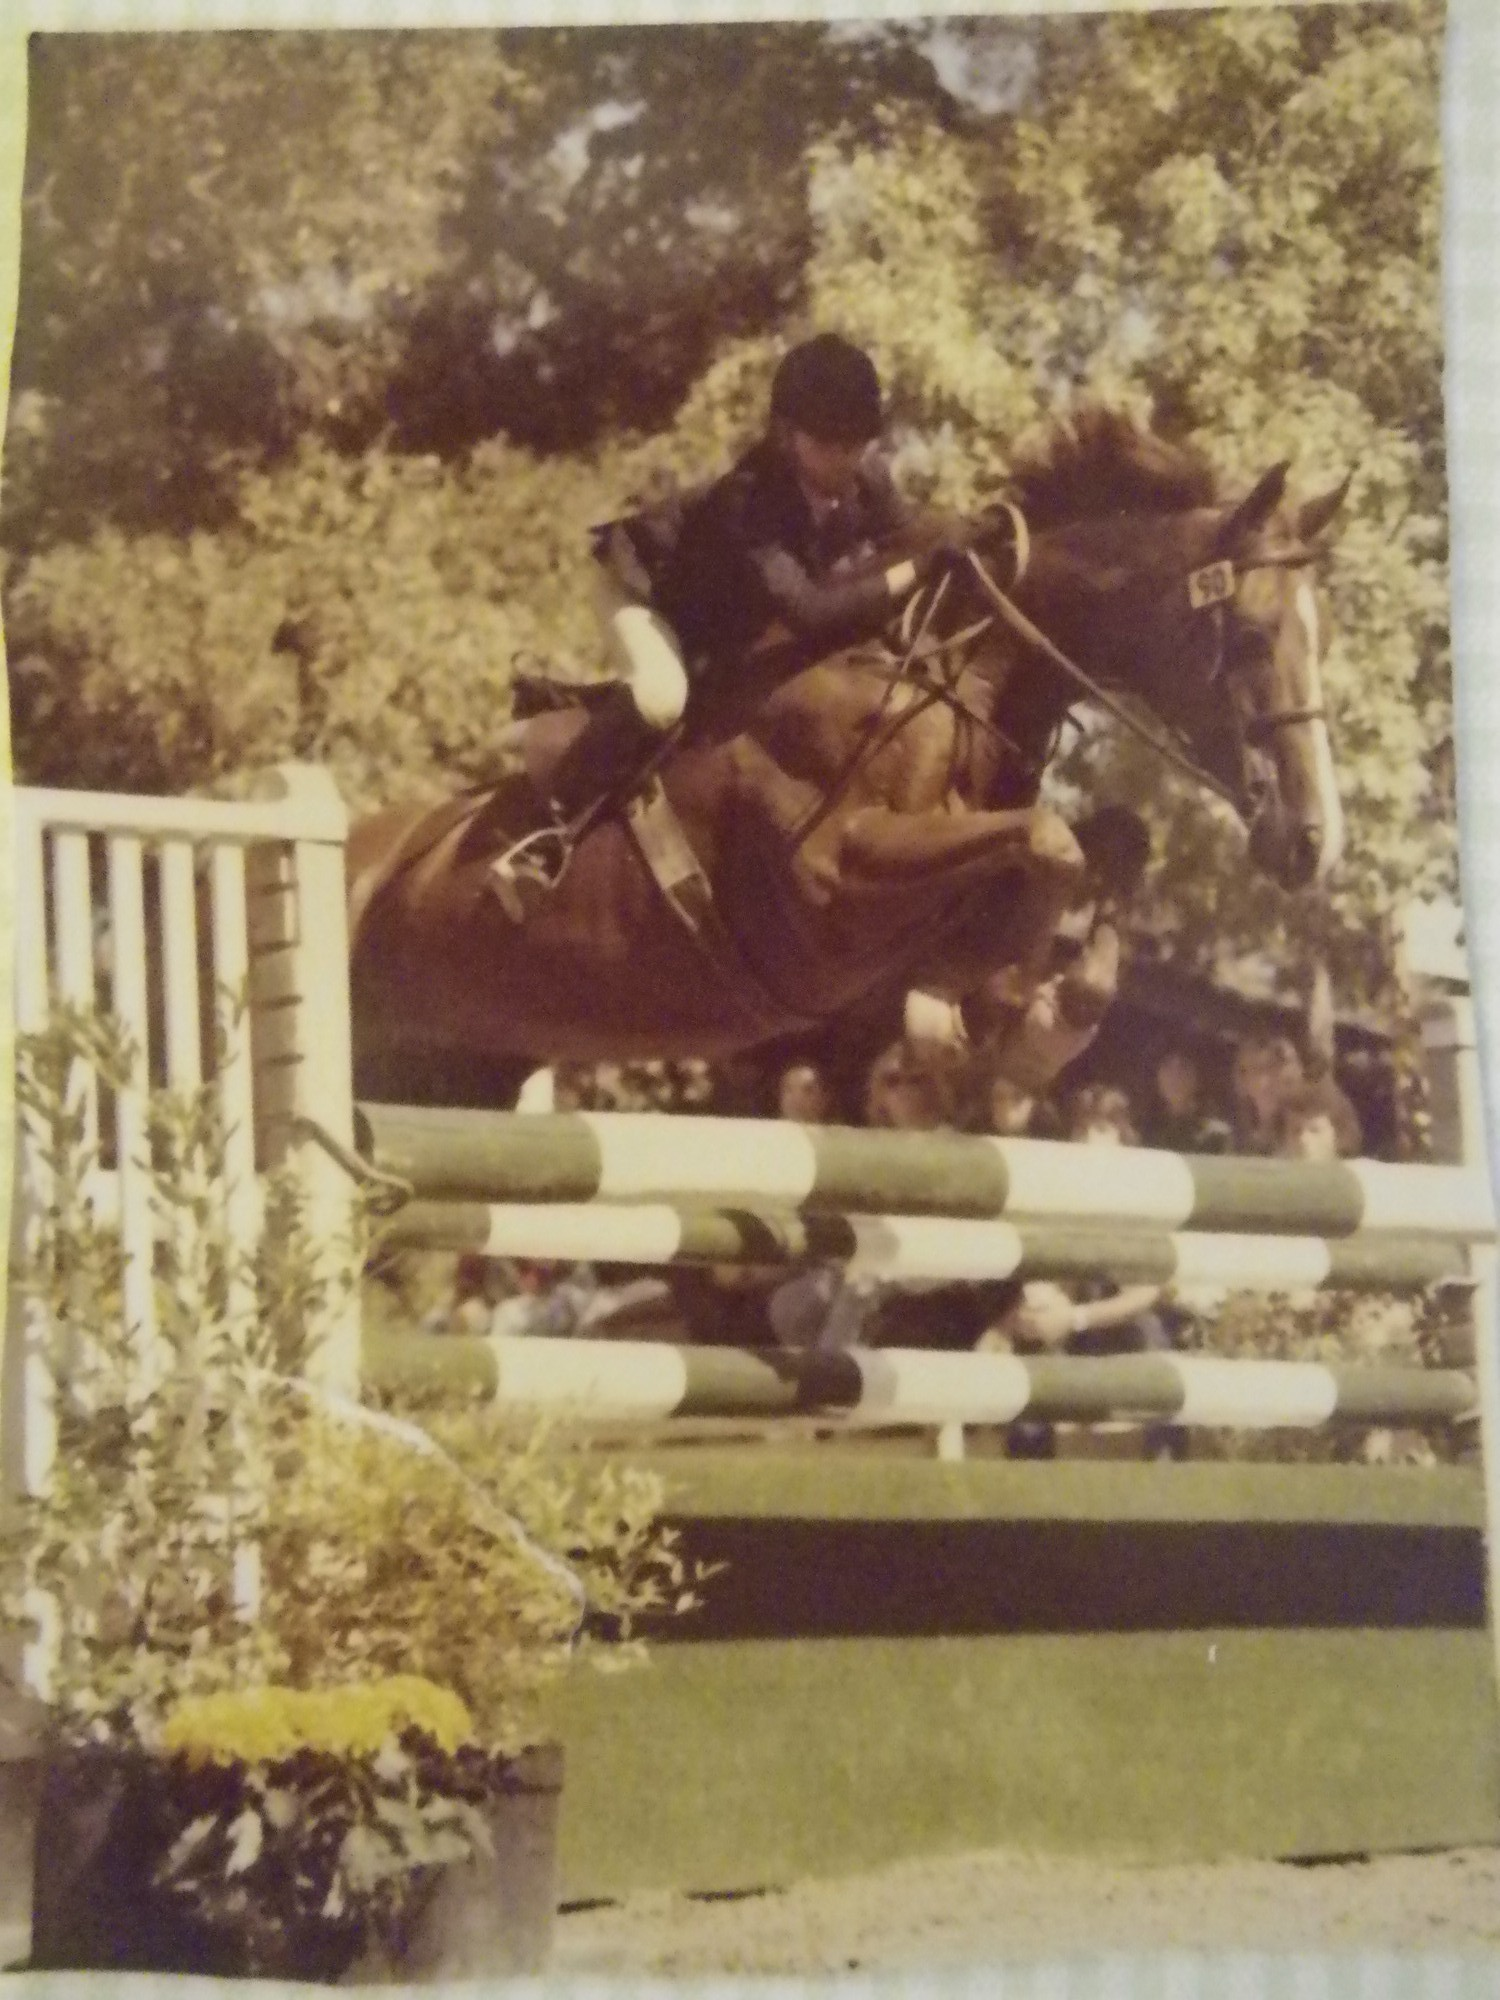 Palace Playboy at the Foxfield Jumping Derby